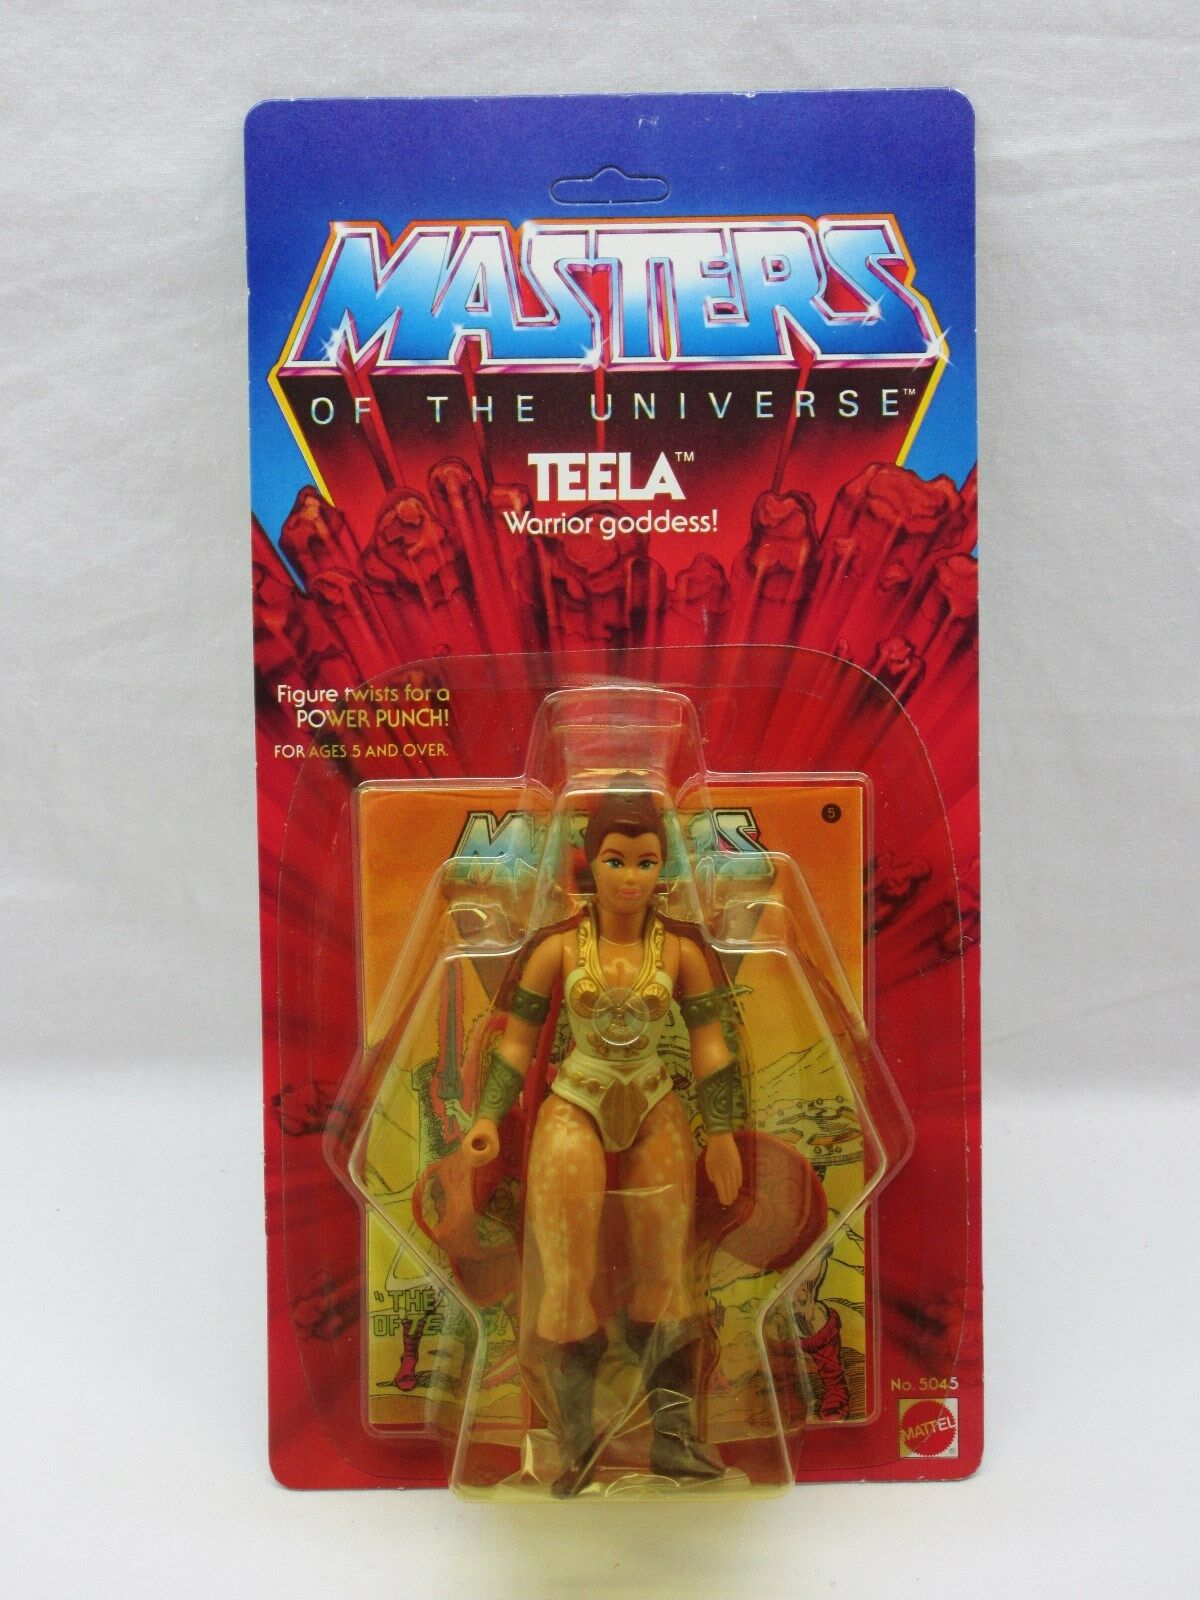 MOTU,VINTAGE,TEELA,TALE OF TEELA COMIC,Masters of the Universe,MOC,SEALED,he man